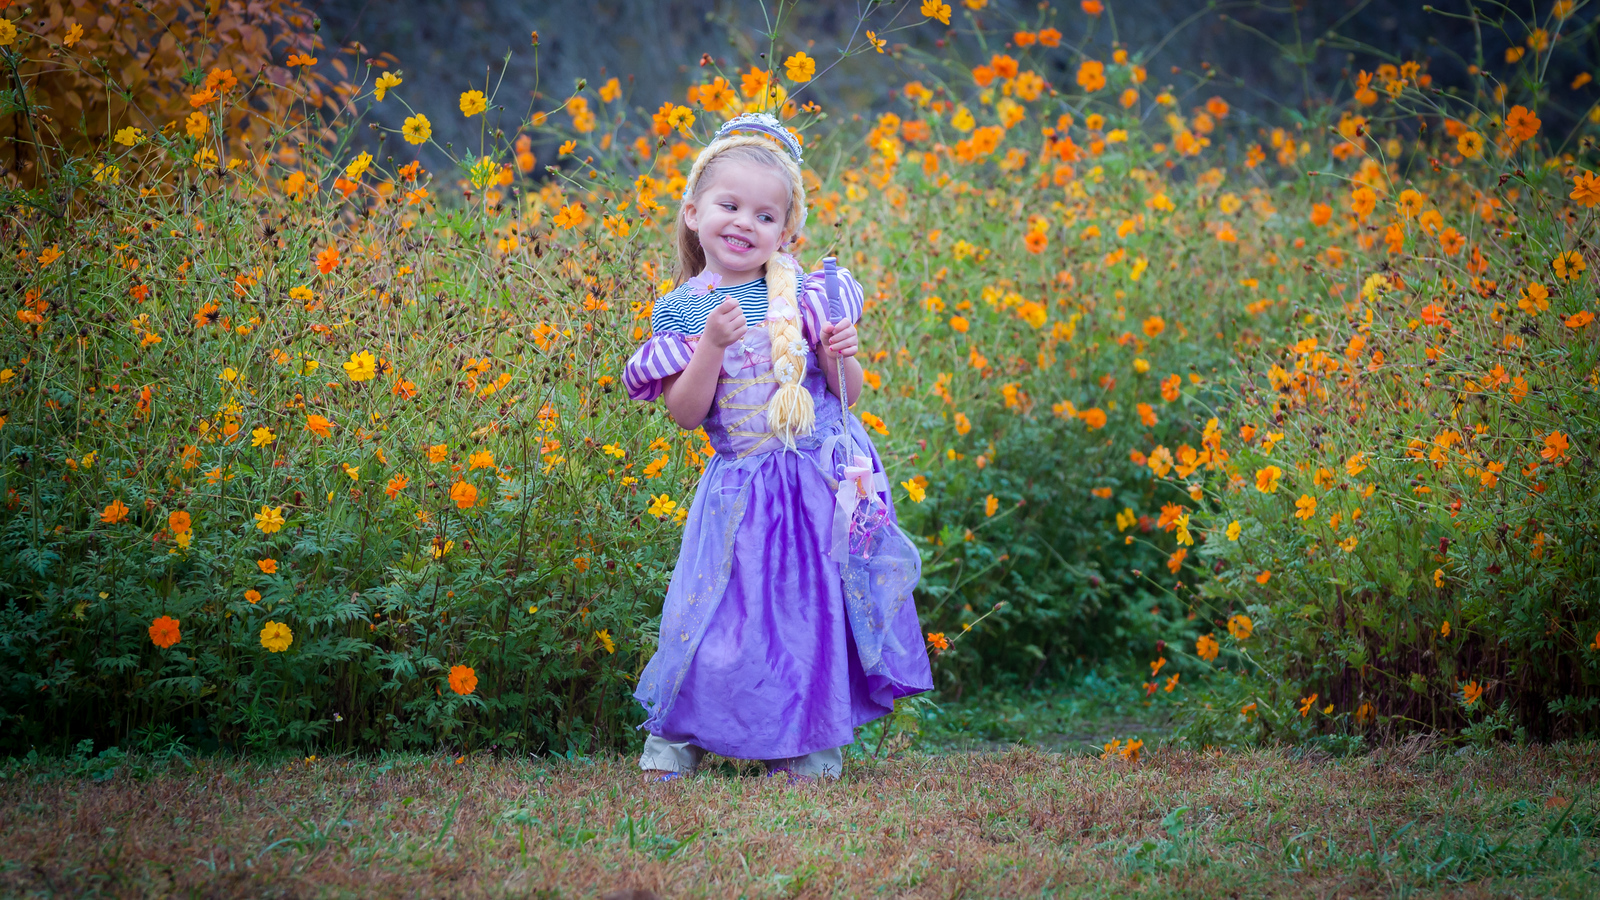 Princess in the Flowers